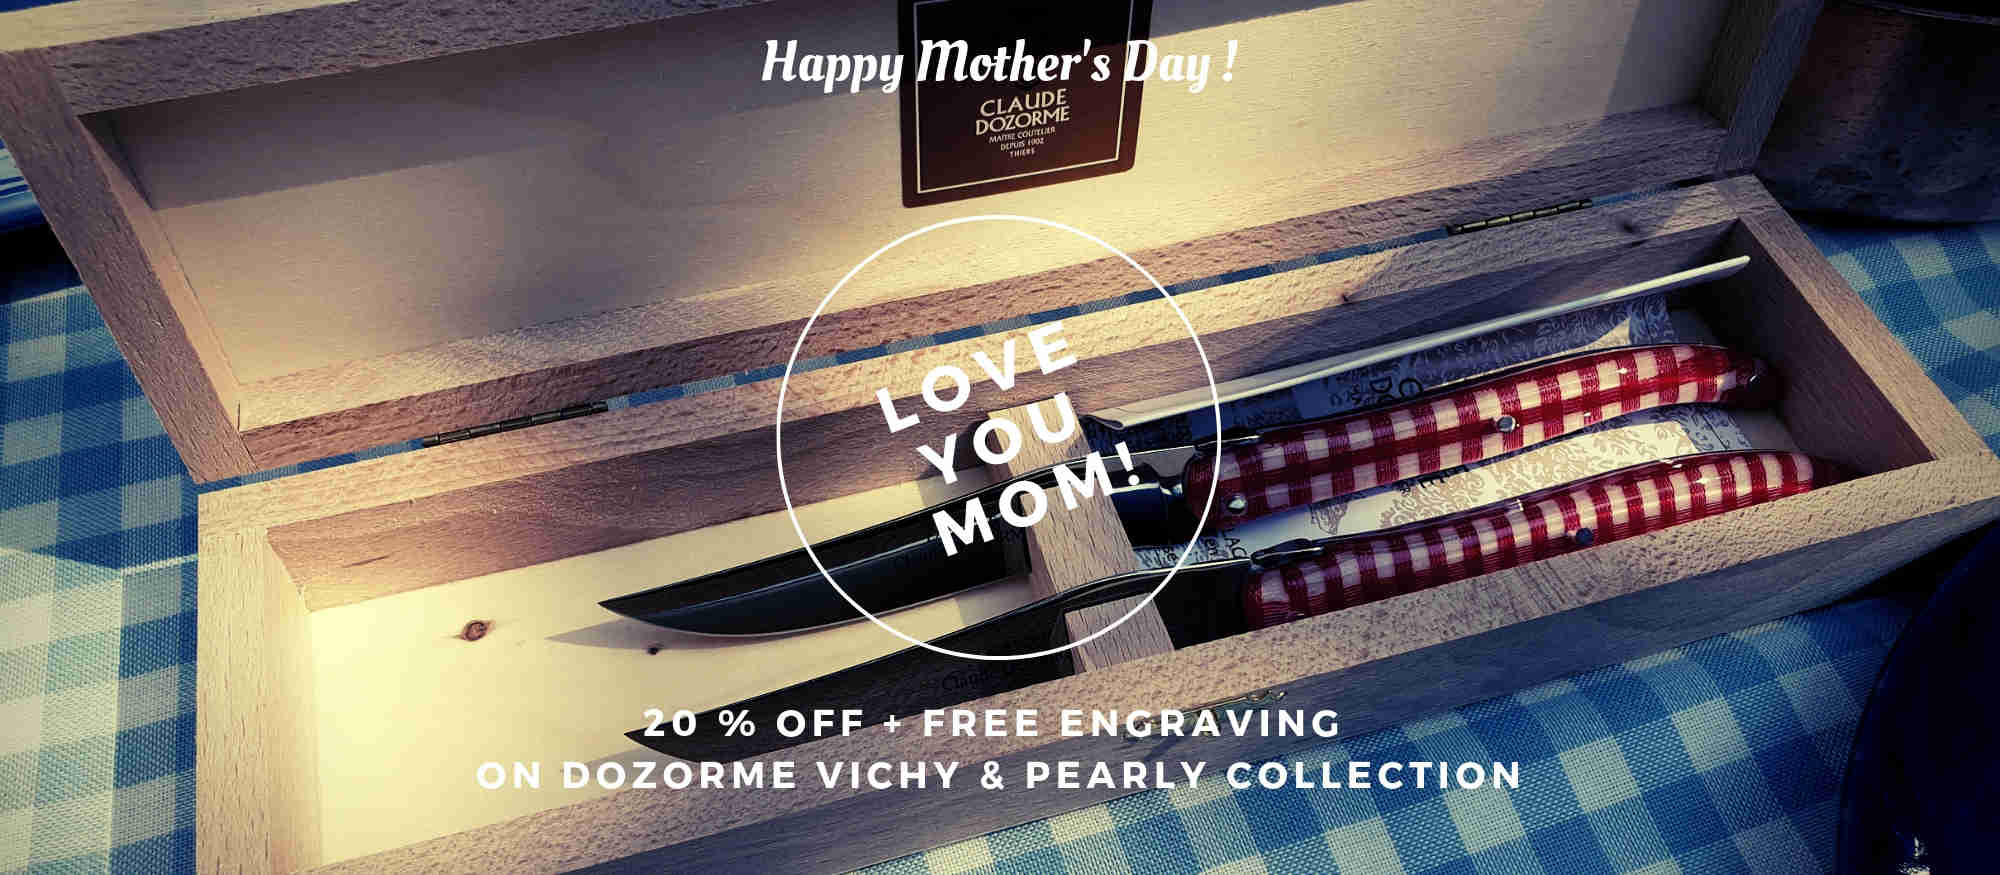 Claude Dozorme box of 2 Laguiole steak knives Vichy handle free engraving for Mother's day